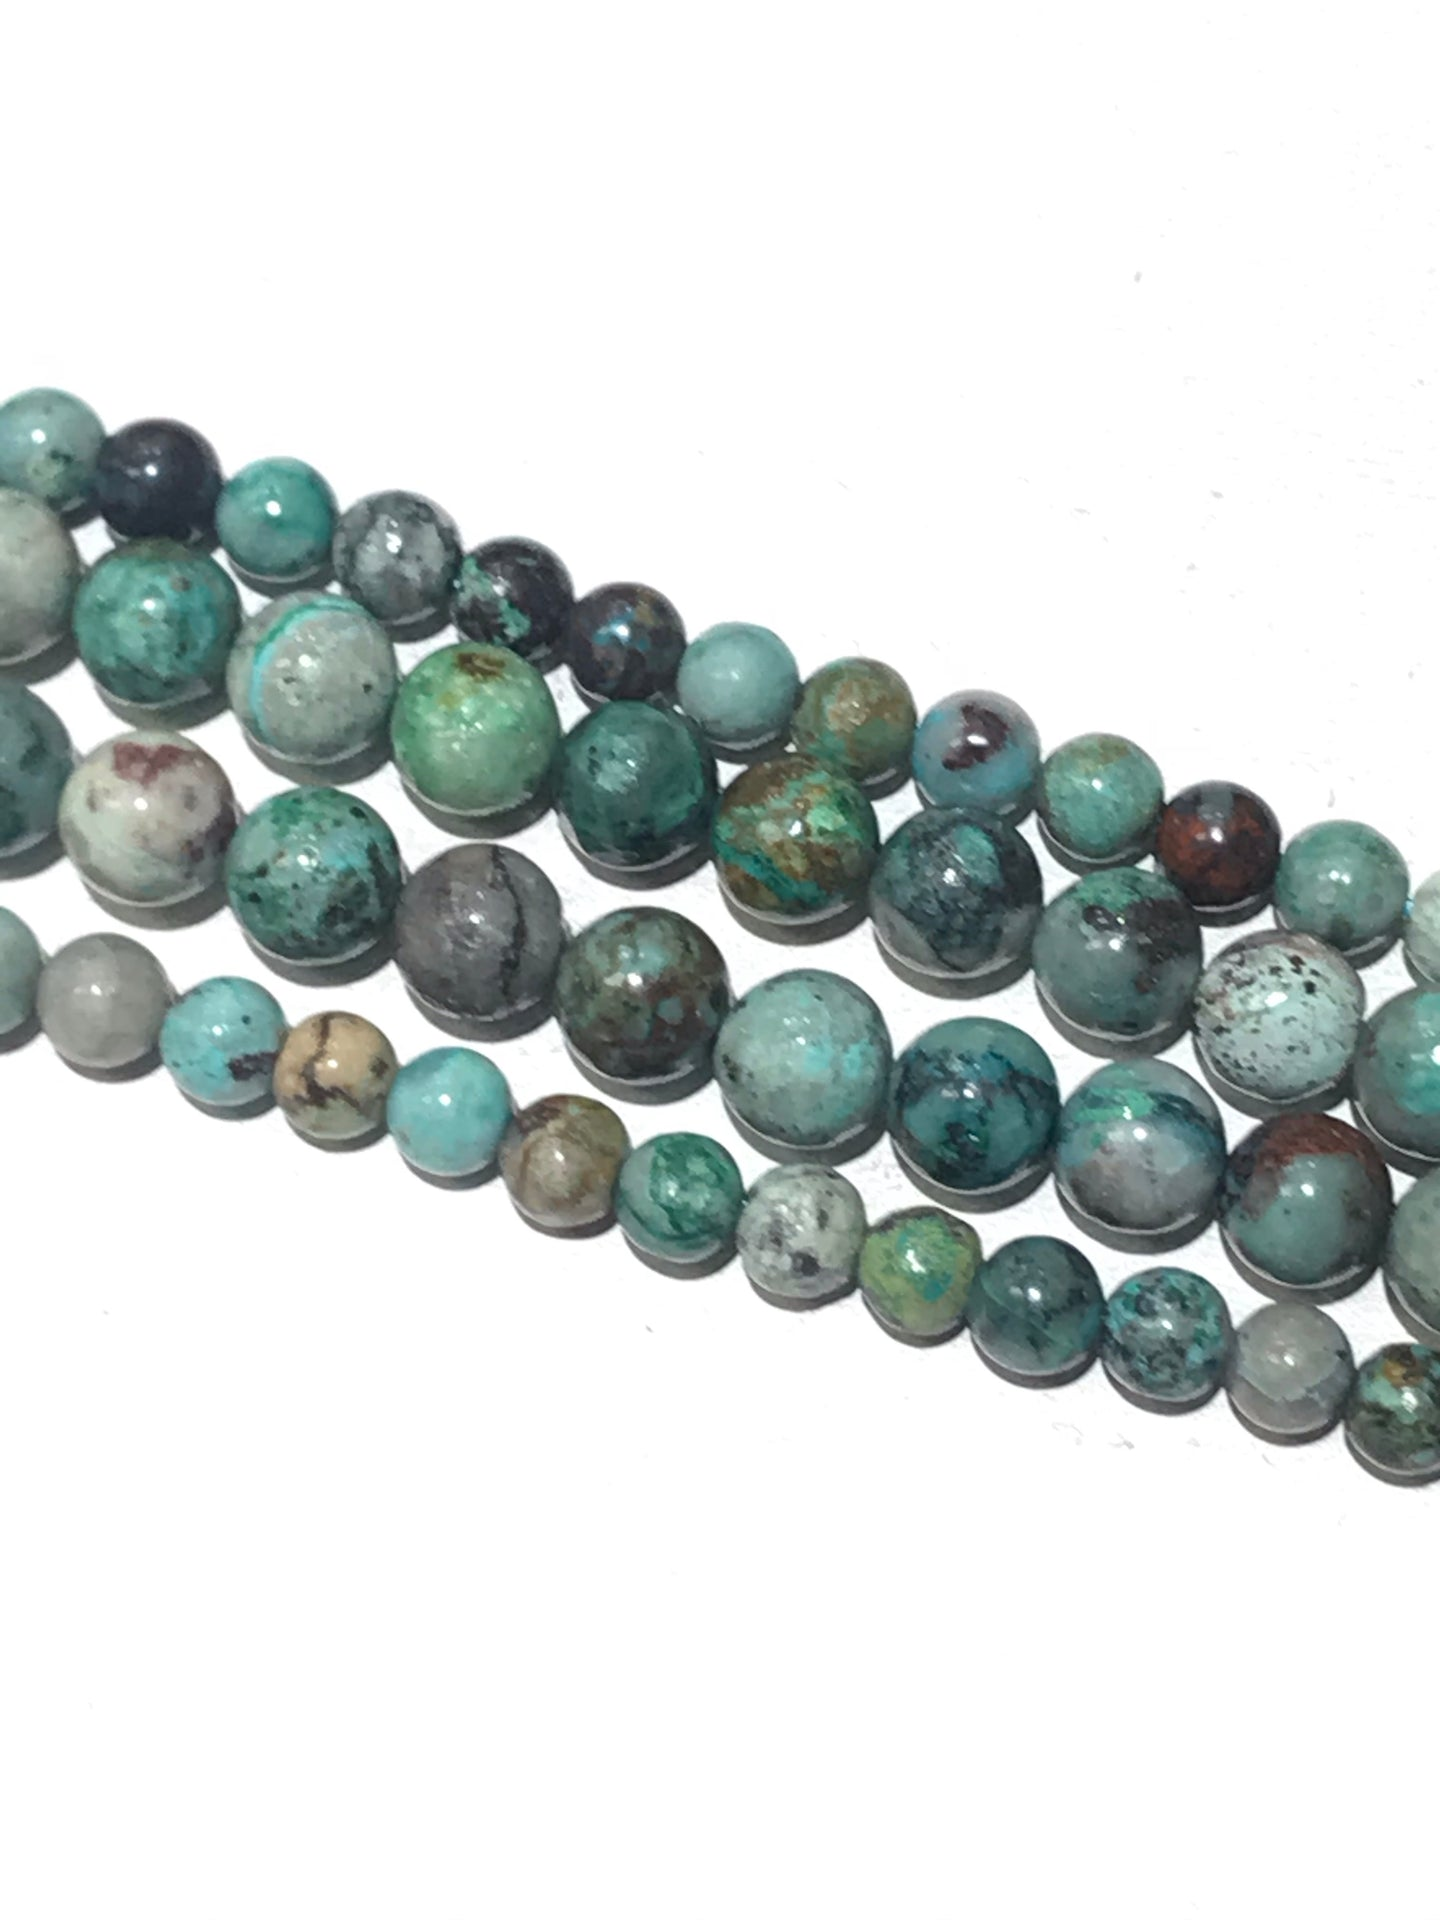 Chrysocolla Natural Gemstone Beads #10-187